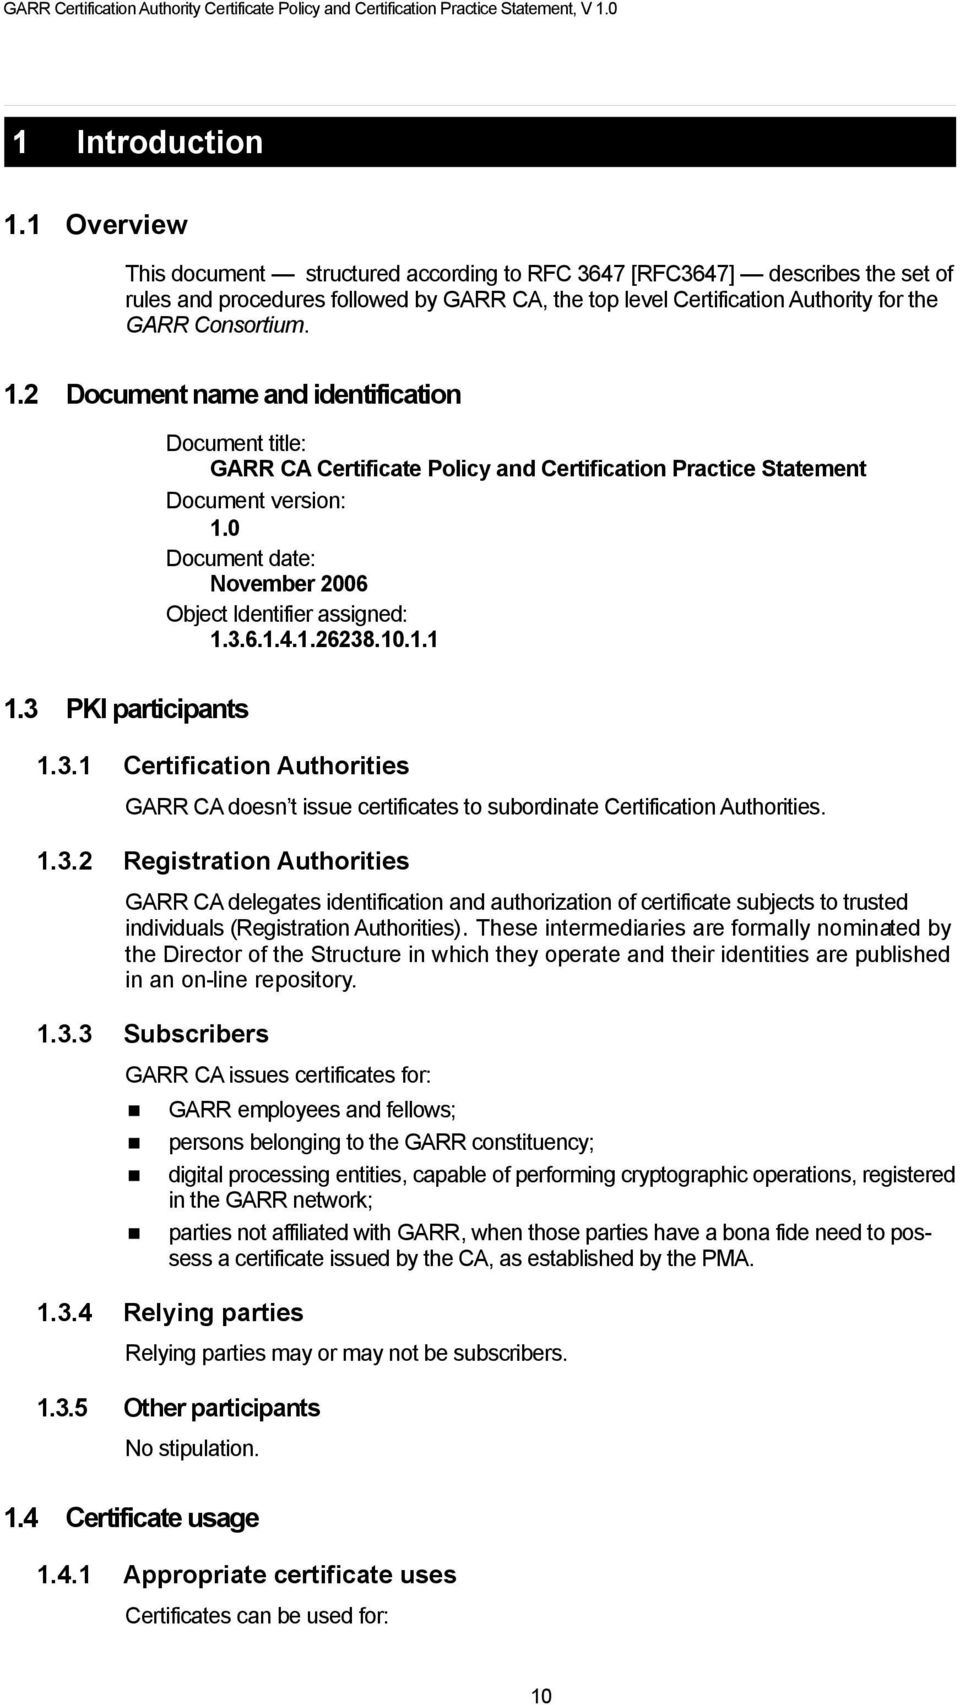 2 Document name and identification Document title: GARR CA Certificate Policy and Certification Practice Statement Document version: 1.0 Document date: November 2006 Object Identifier assigned: 1.3.6.1.4.